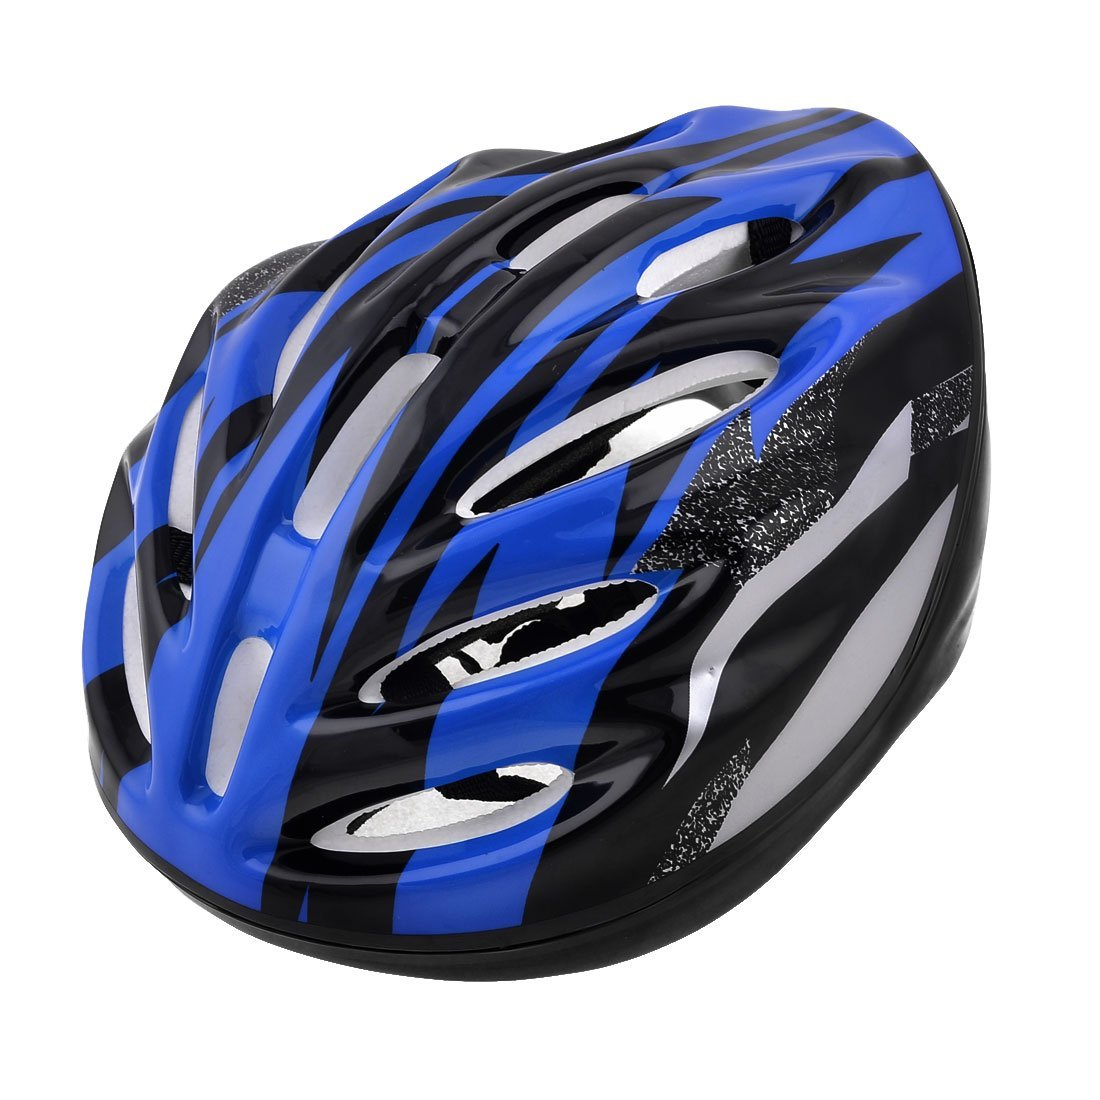 Best Selling Como Bicycle Helmets